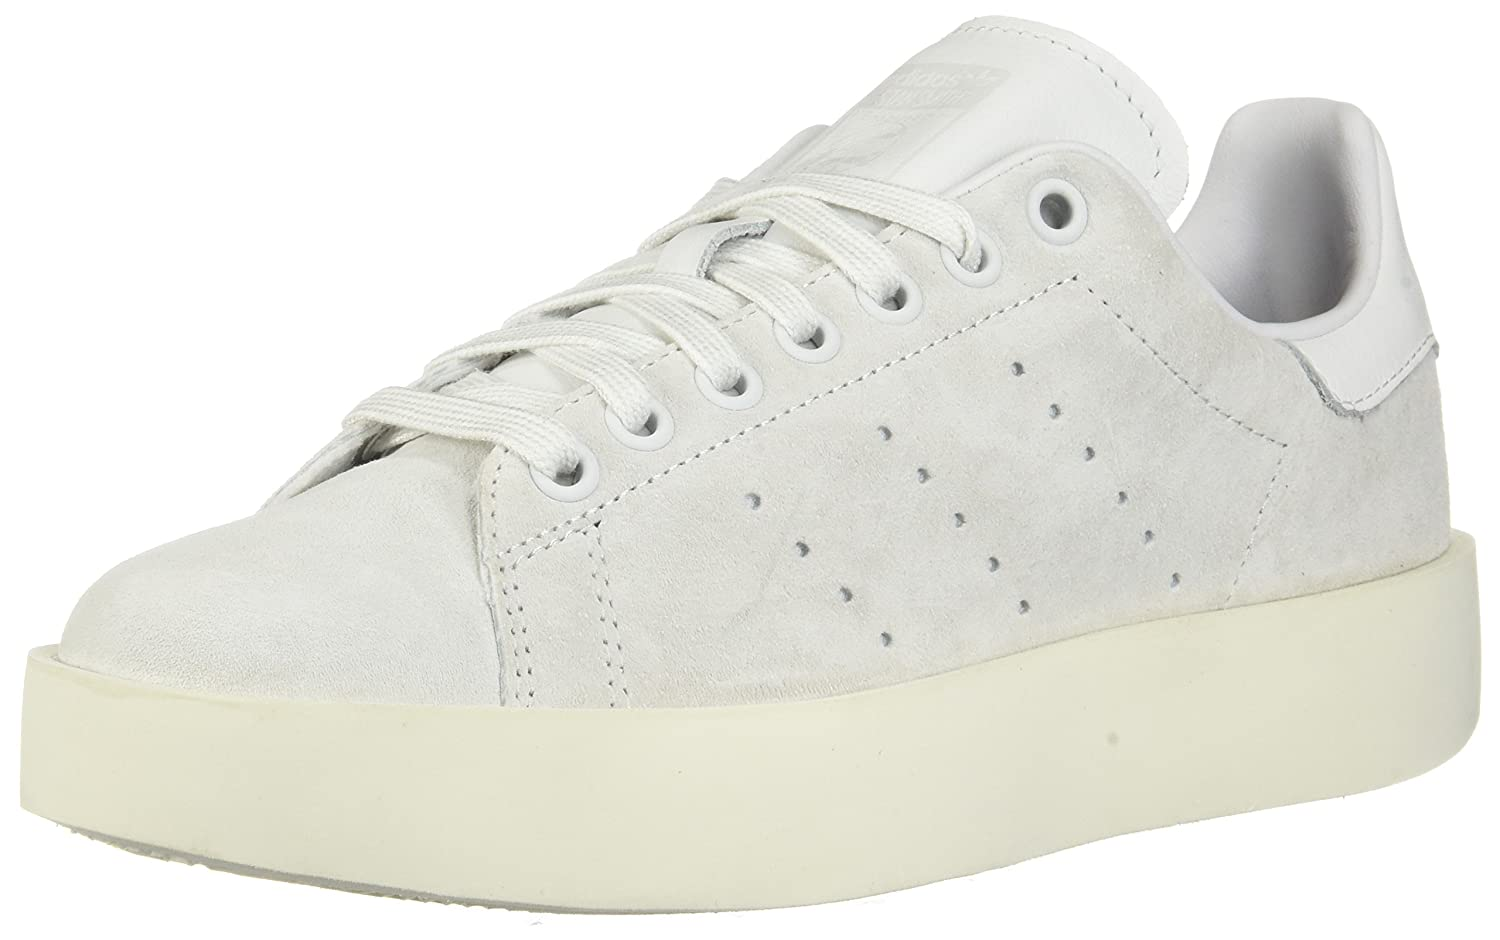 adidas Originals Women's Stan Smith Tennis Sneakers B06XX3J4QR 6 B(M) US|Crystal White/Crystal White/Off White